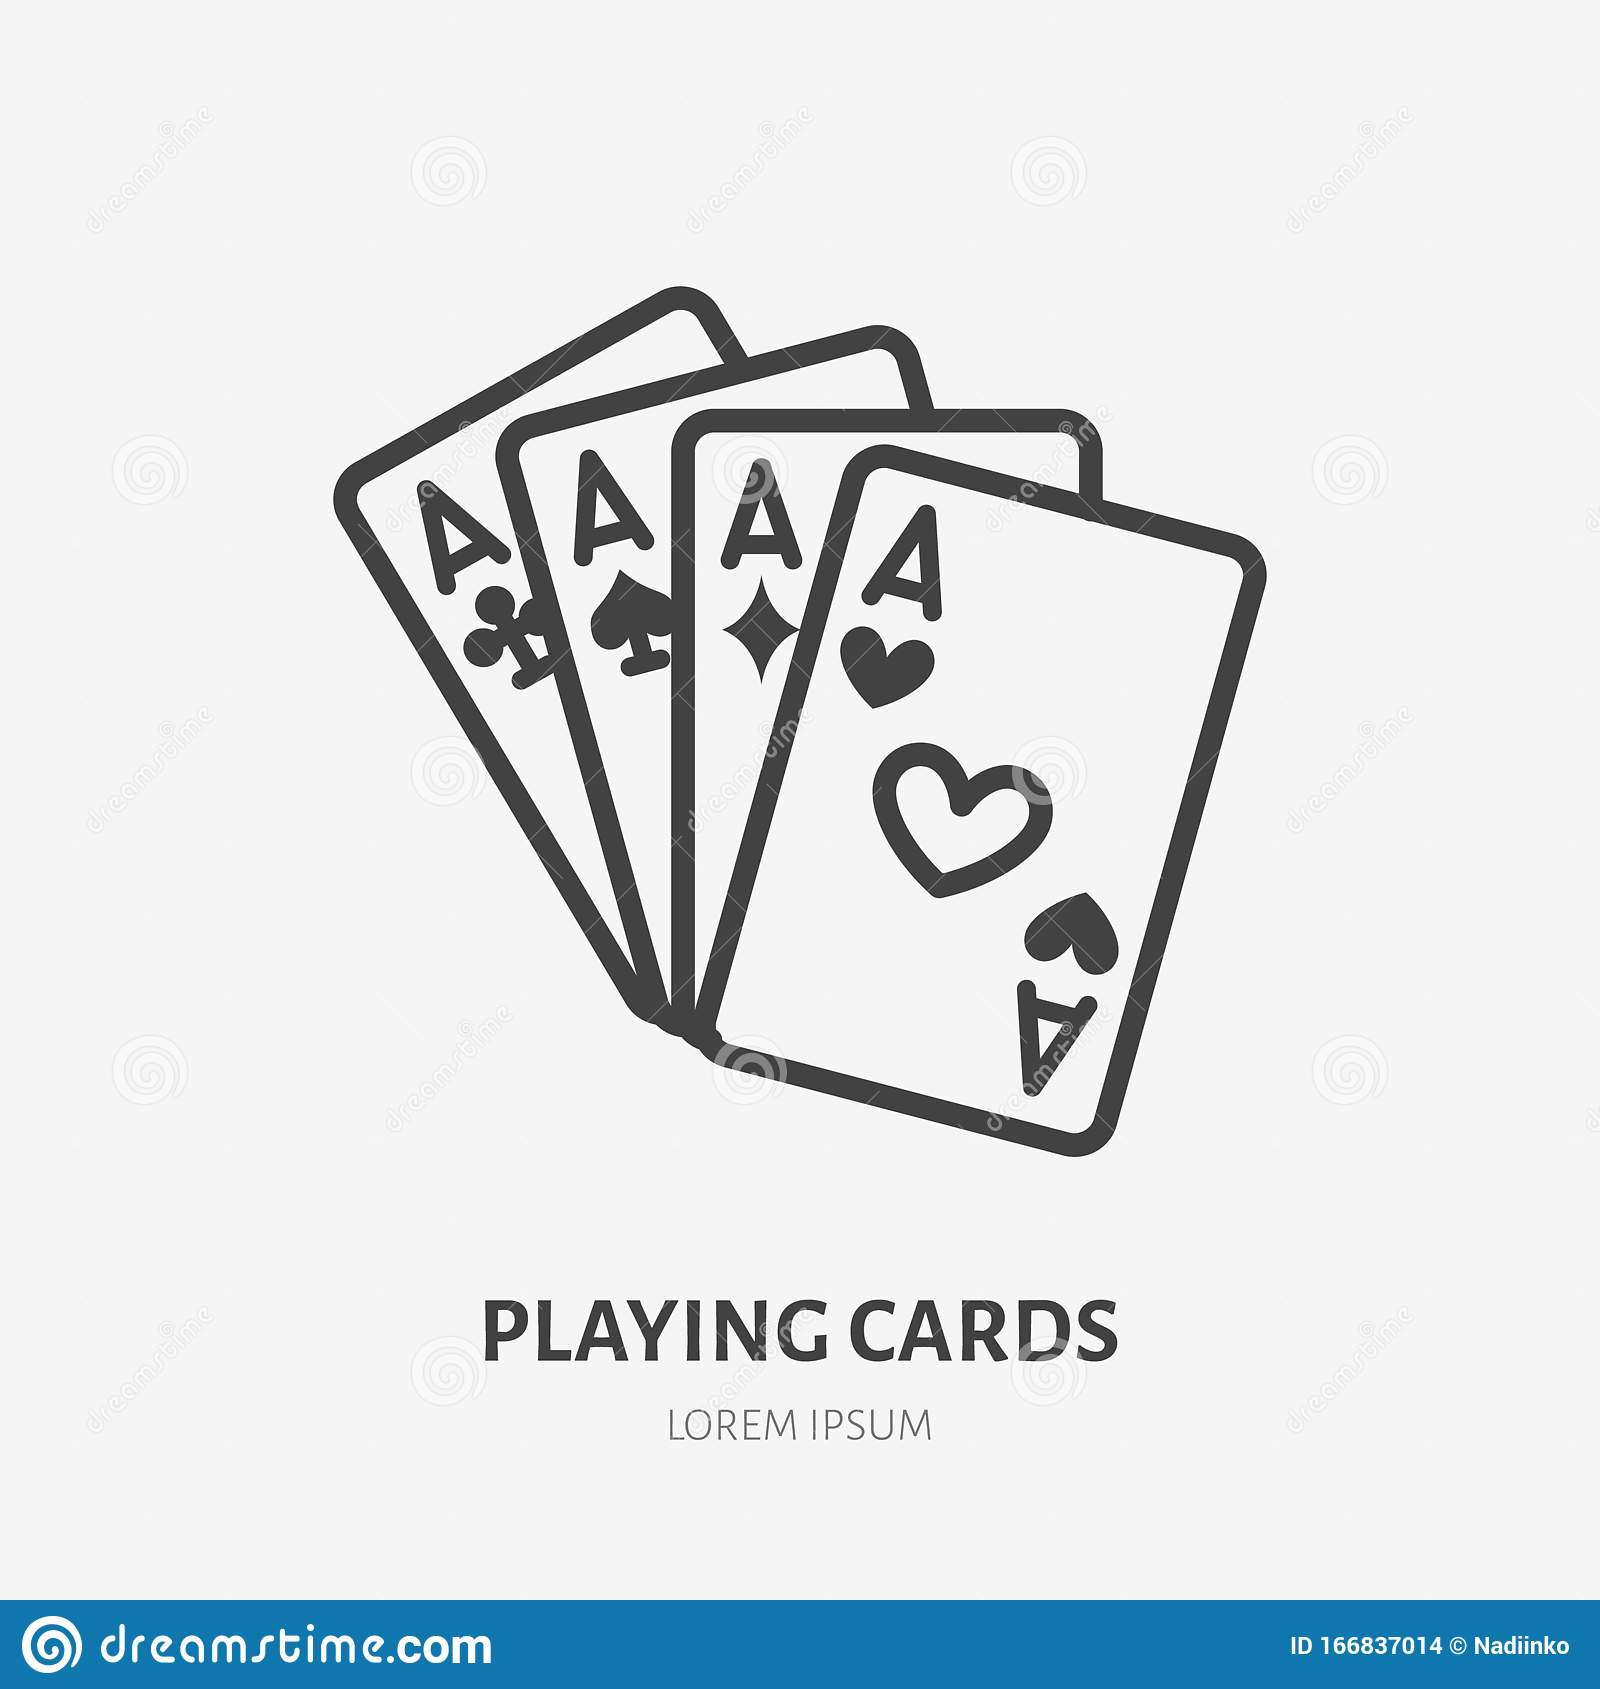 Poker Cards Line Icon Vector Pictogram Of Blackjack Game Four Aces Illustration Casino Gambling Sign Stock Vector Illustration Of Gamble Club 166837014